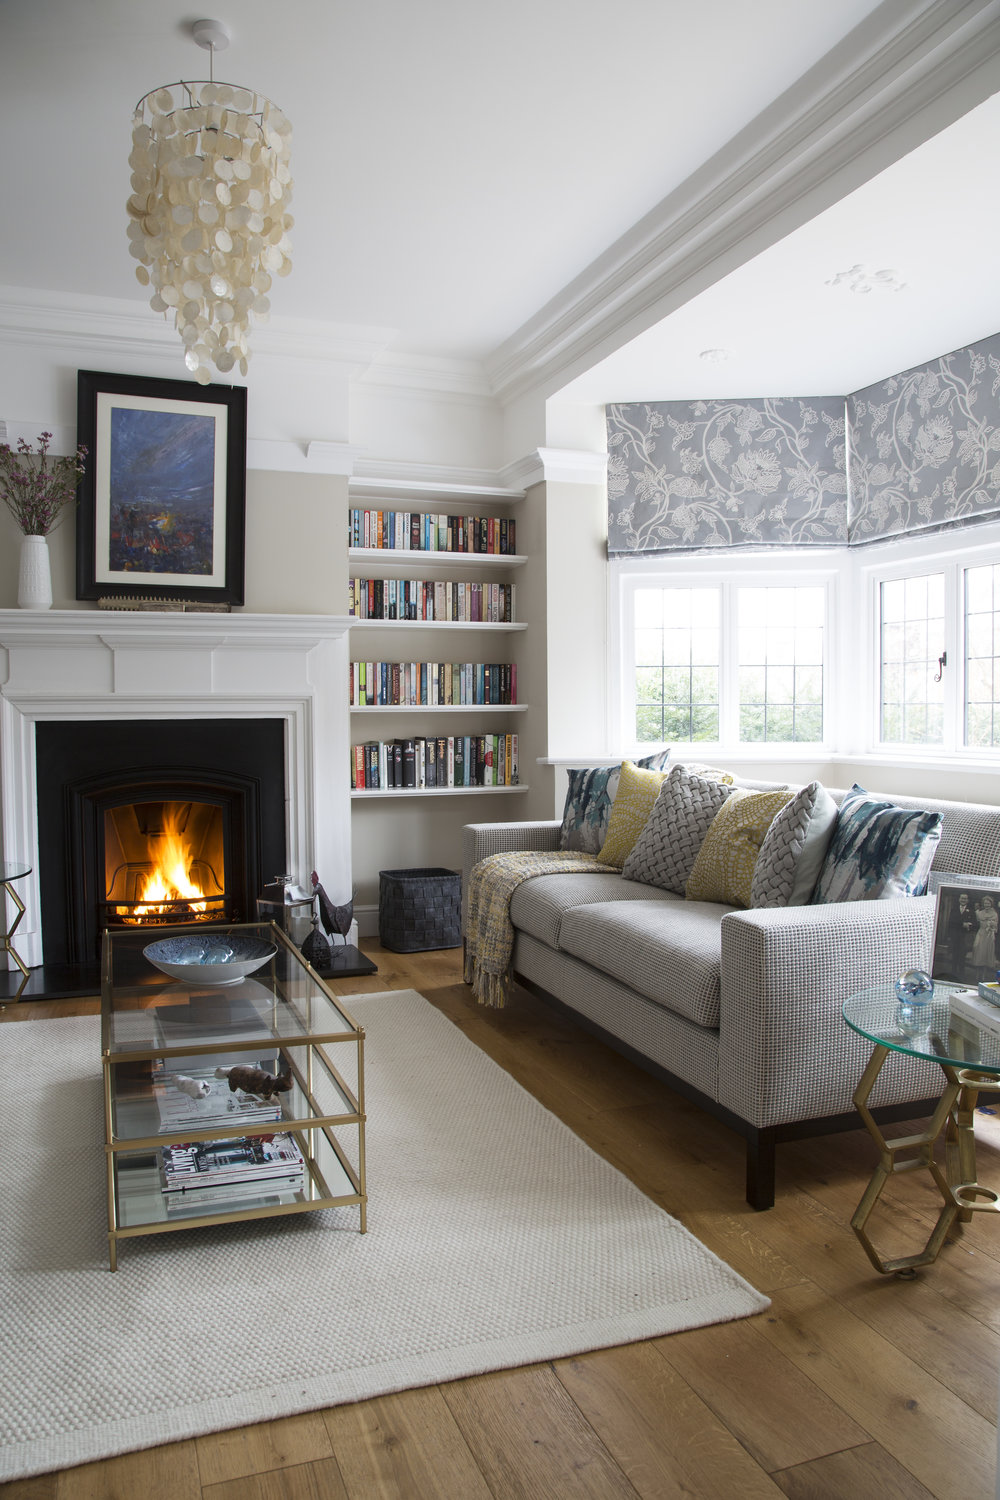 A brass coffee table and modern grey sofa compliment an open fireplace and period features in this family home in Sevenoaks Kent - Interior Design by Phoebe Oldrey of Smartstyle Interiors